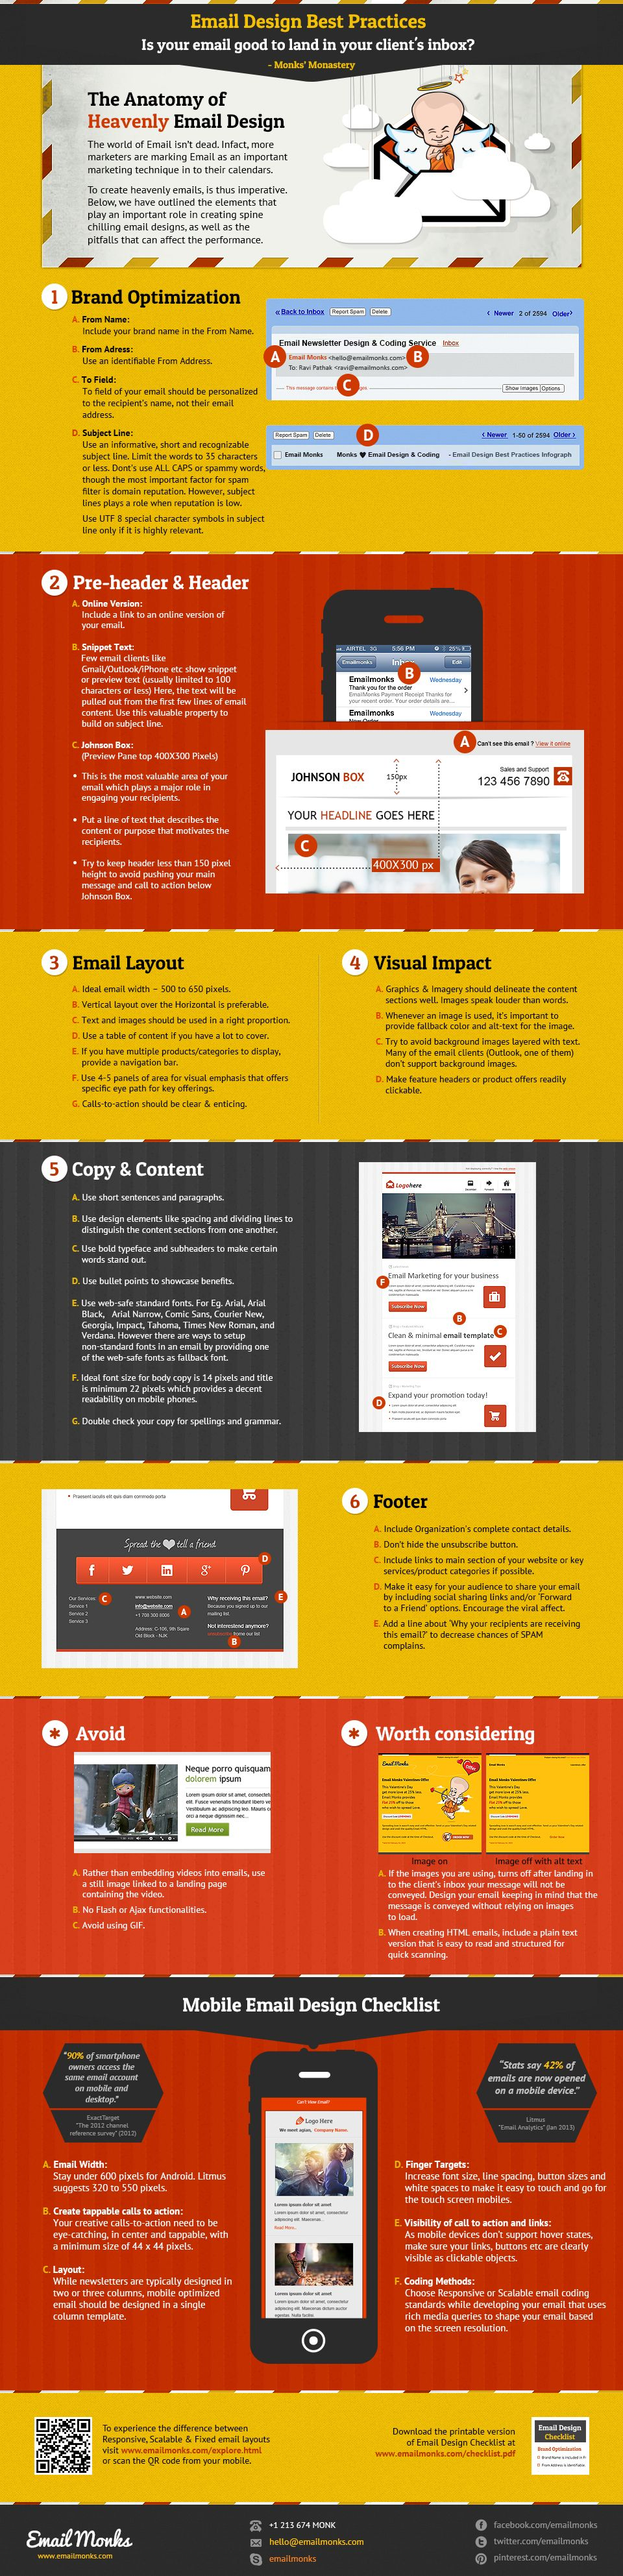 Email Newsletter Design 1000+ images about Email Newsletter Design on Pinterest  Email newsletter design, Email newsletters and Email design